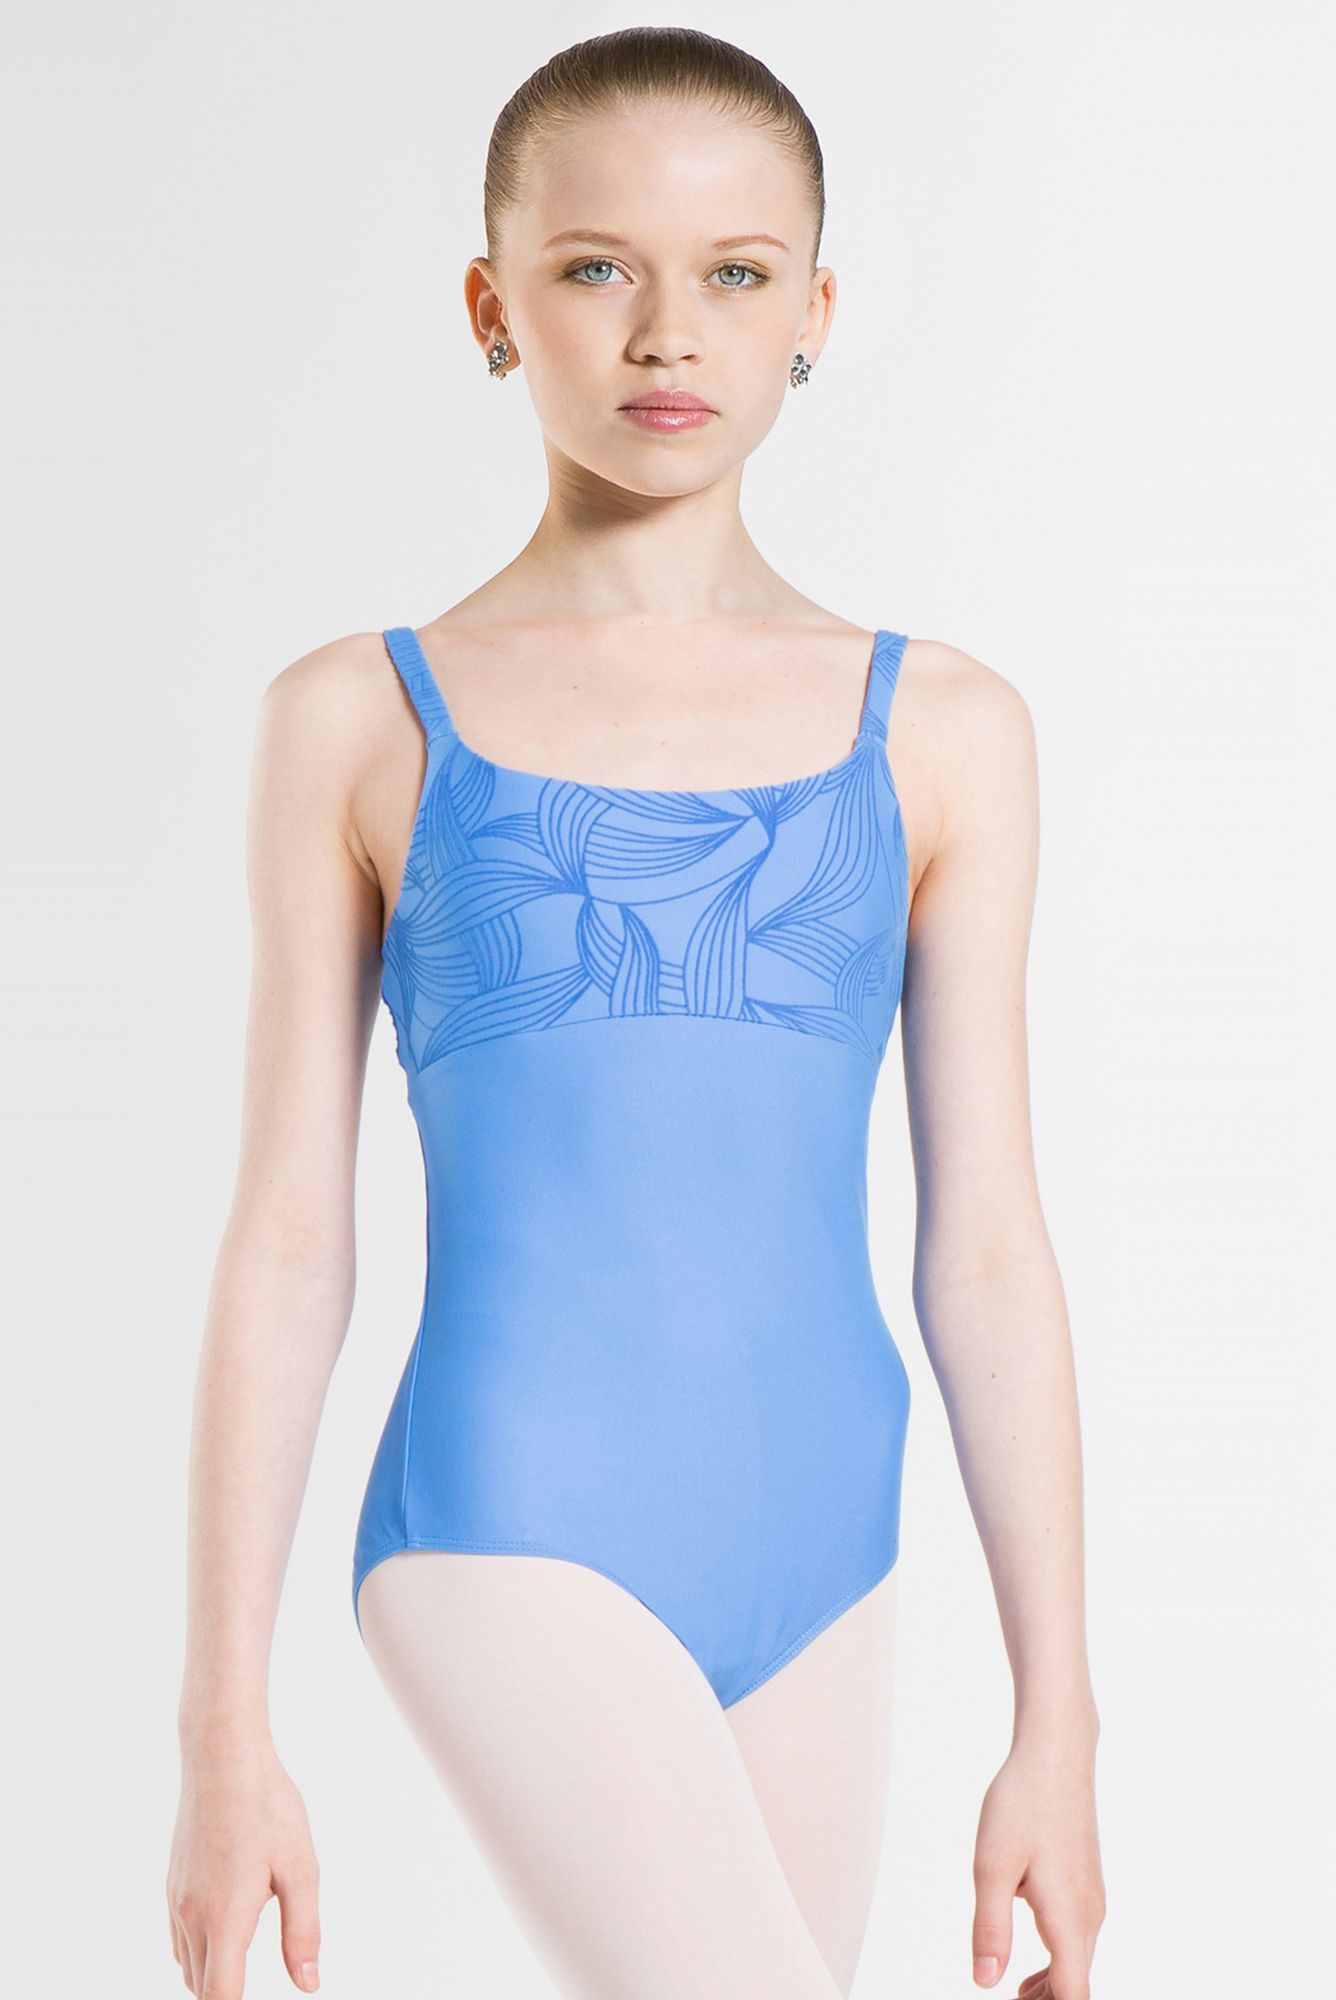 34d8f89c4aaa PASSION - Camisole style leotard with flocked microfiber detail on ...